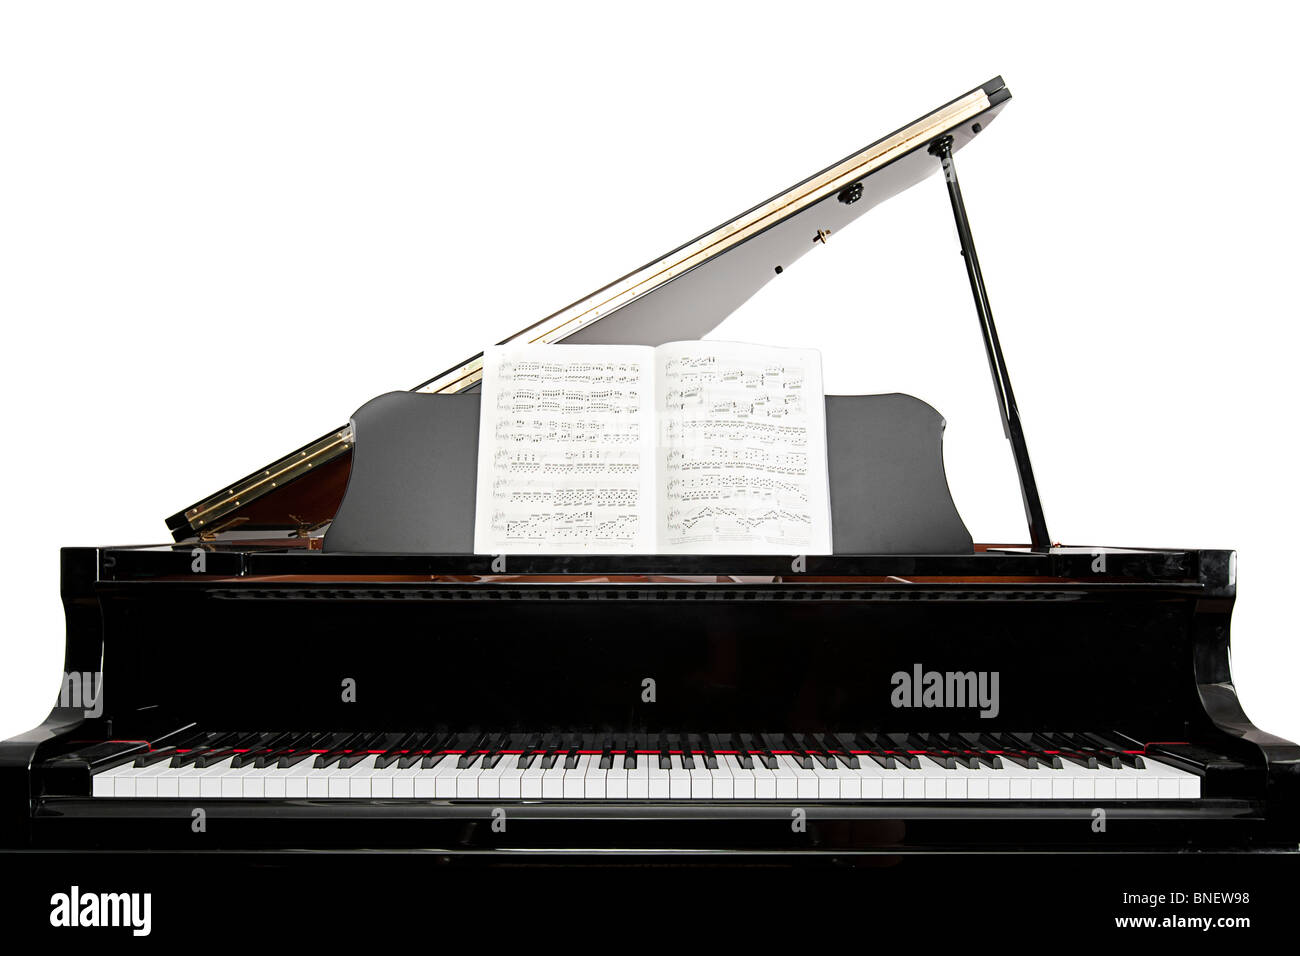 Baby Grand Piano Stock Photos & Baby Grand Piano Stock Images - Alamy